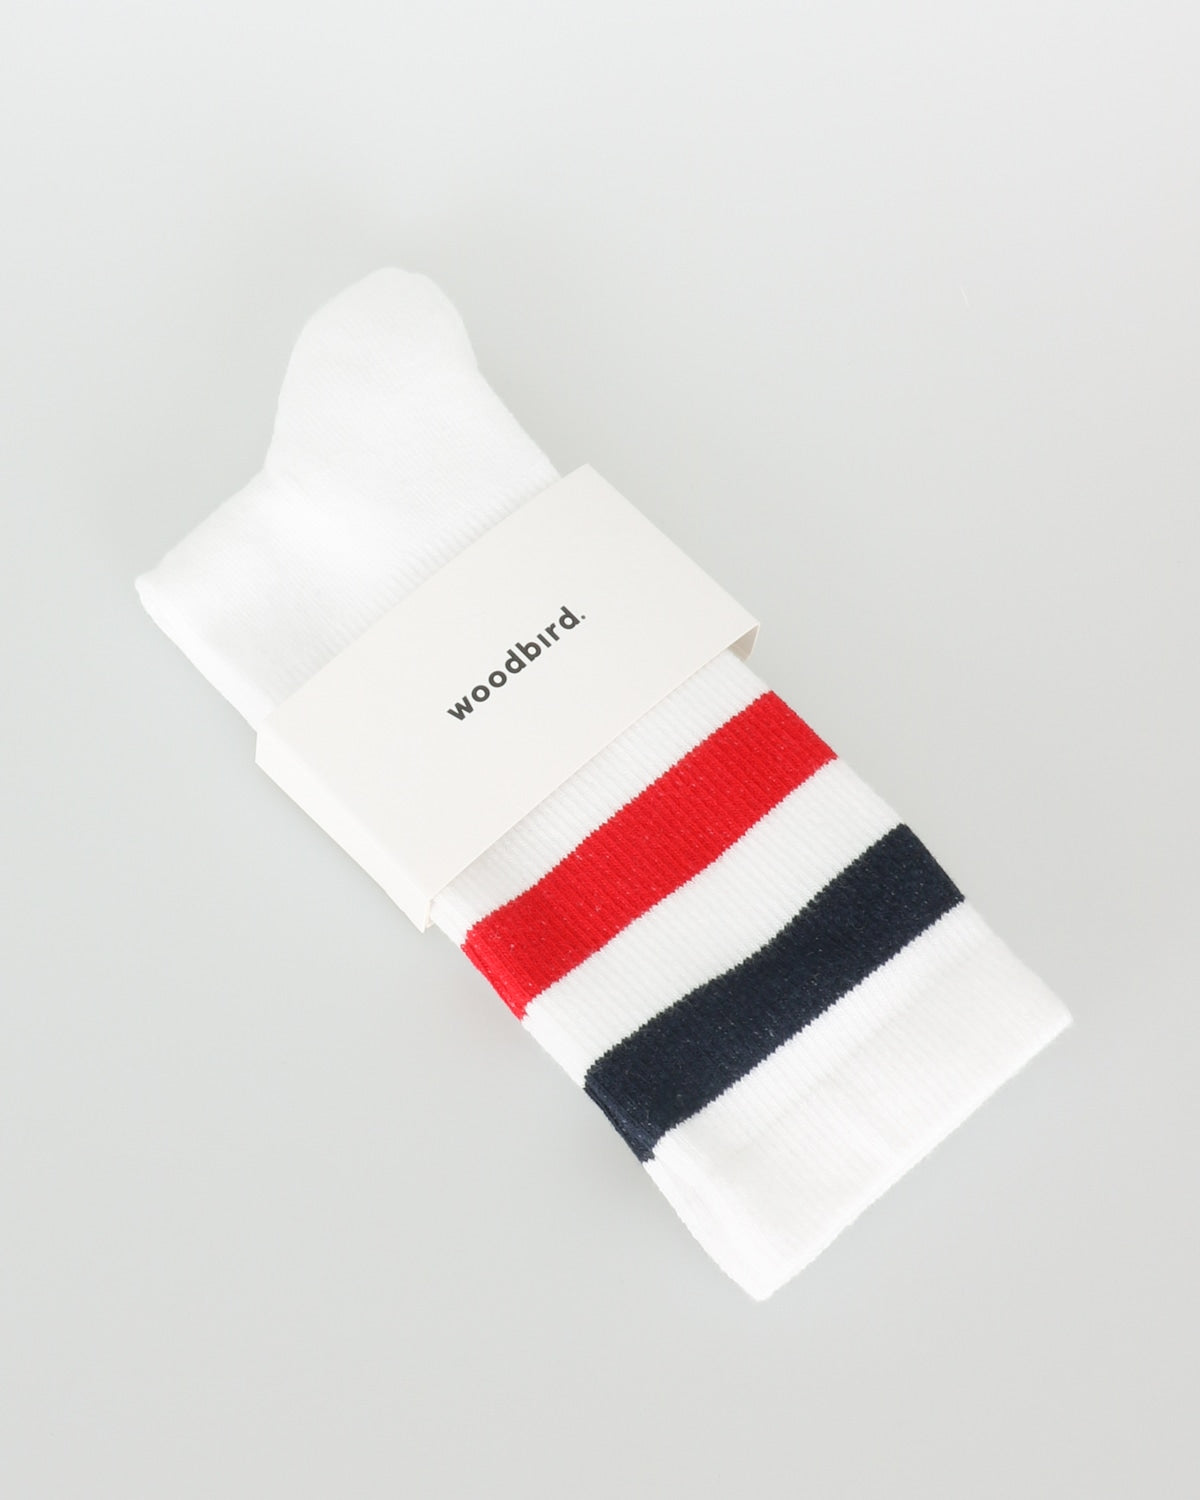 woodbird_tennis socks_white navy red navy_1_2